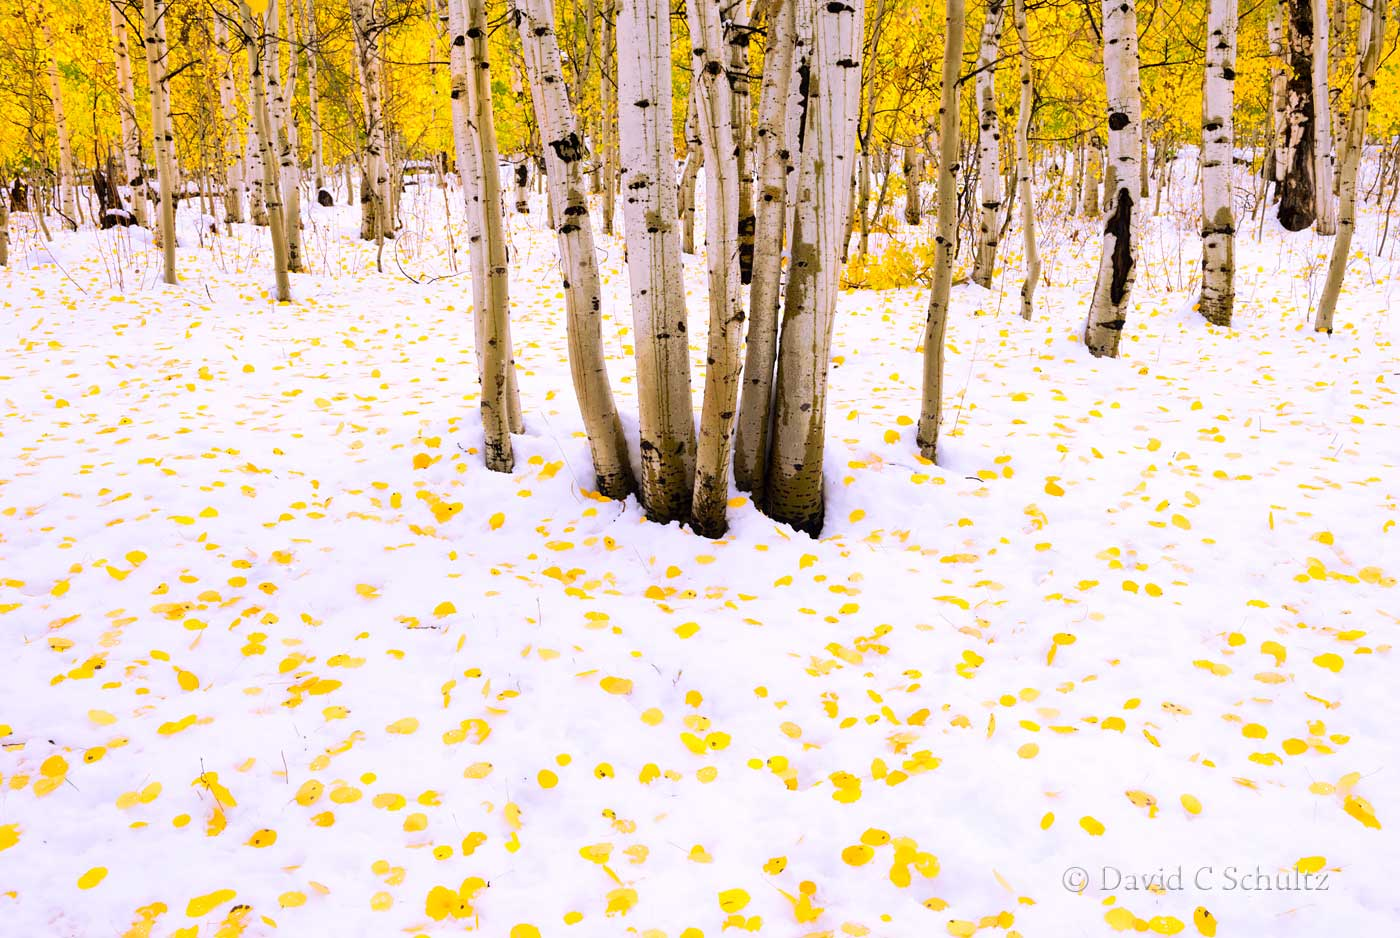 Aspen trees in the Uinta Mountains Utah - Image #3-10374